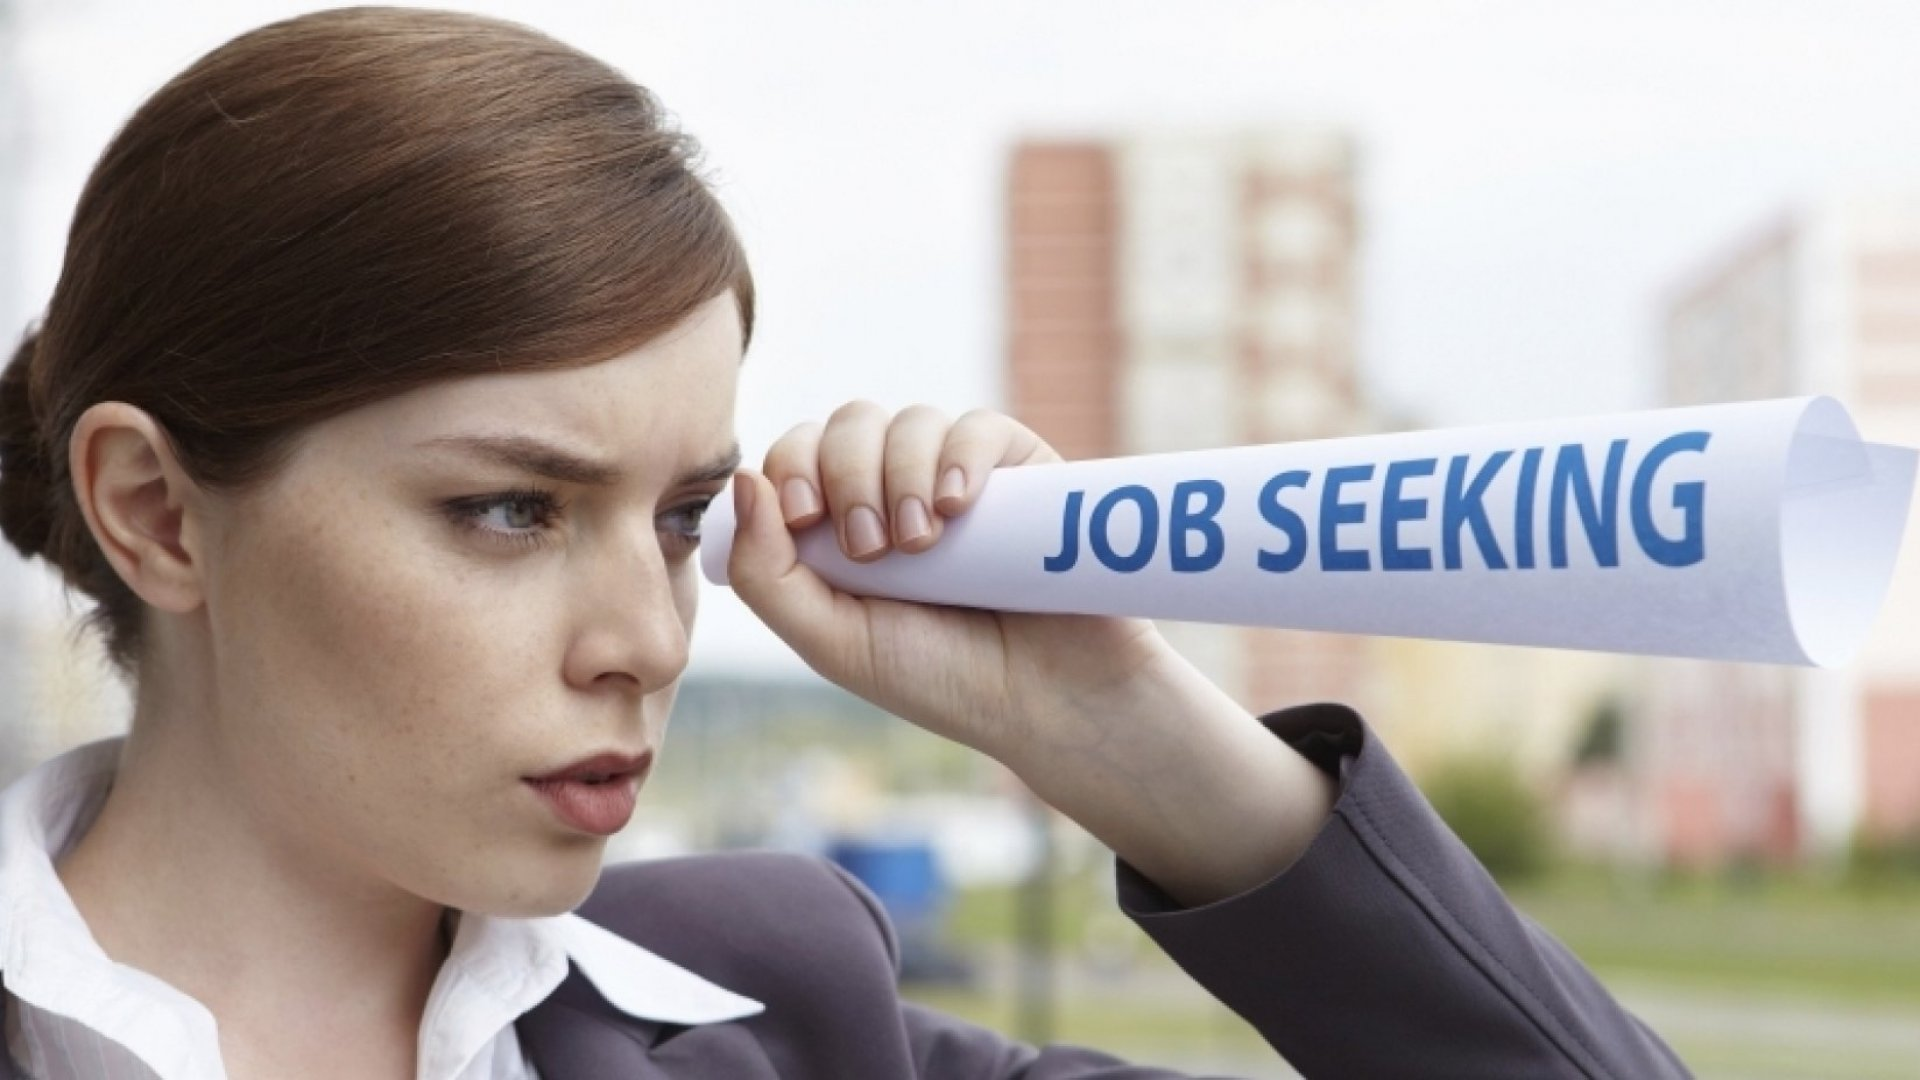 3 Things to Look for in Your First Job